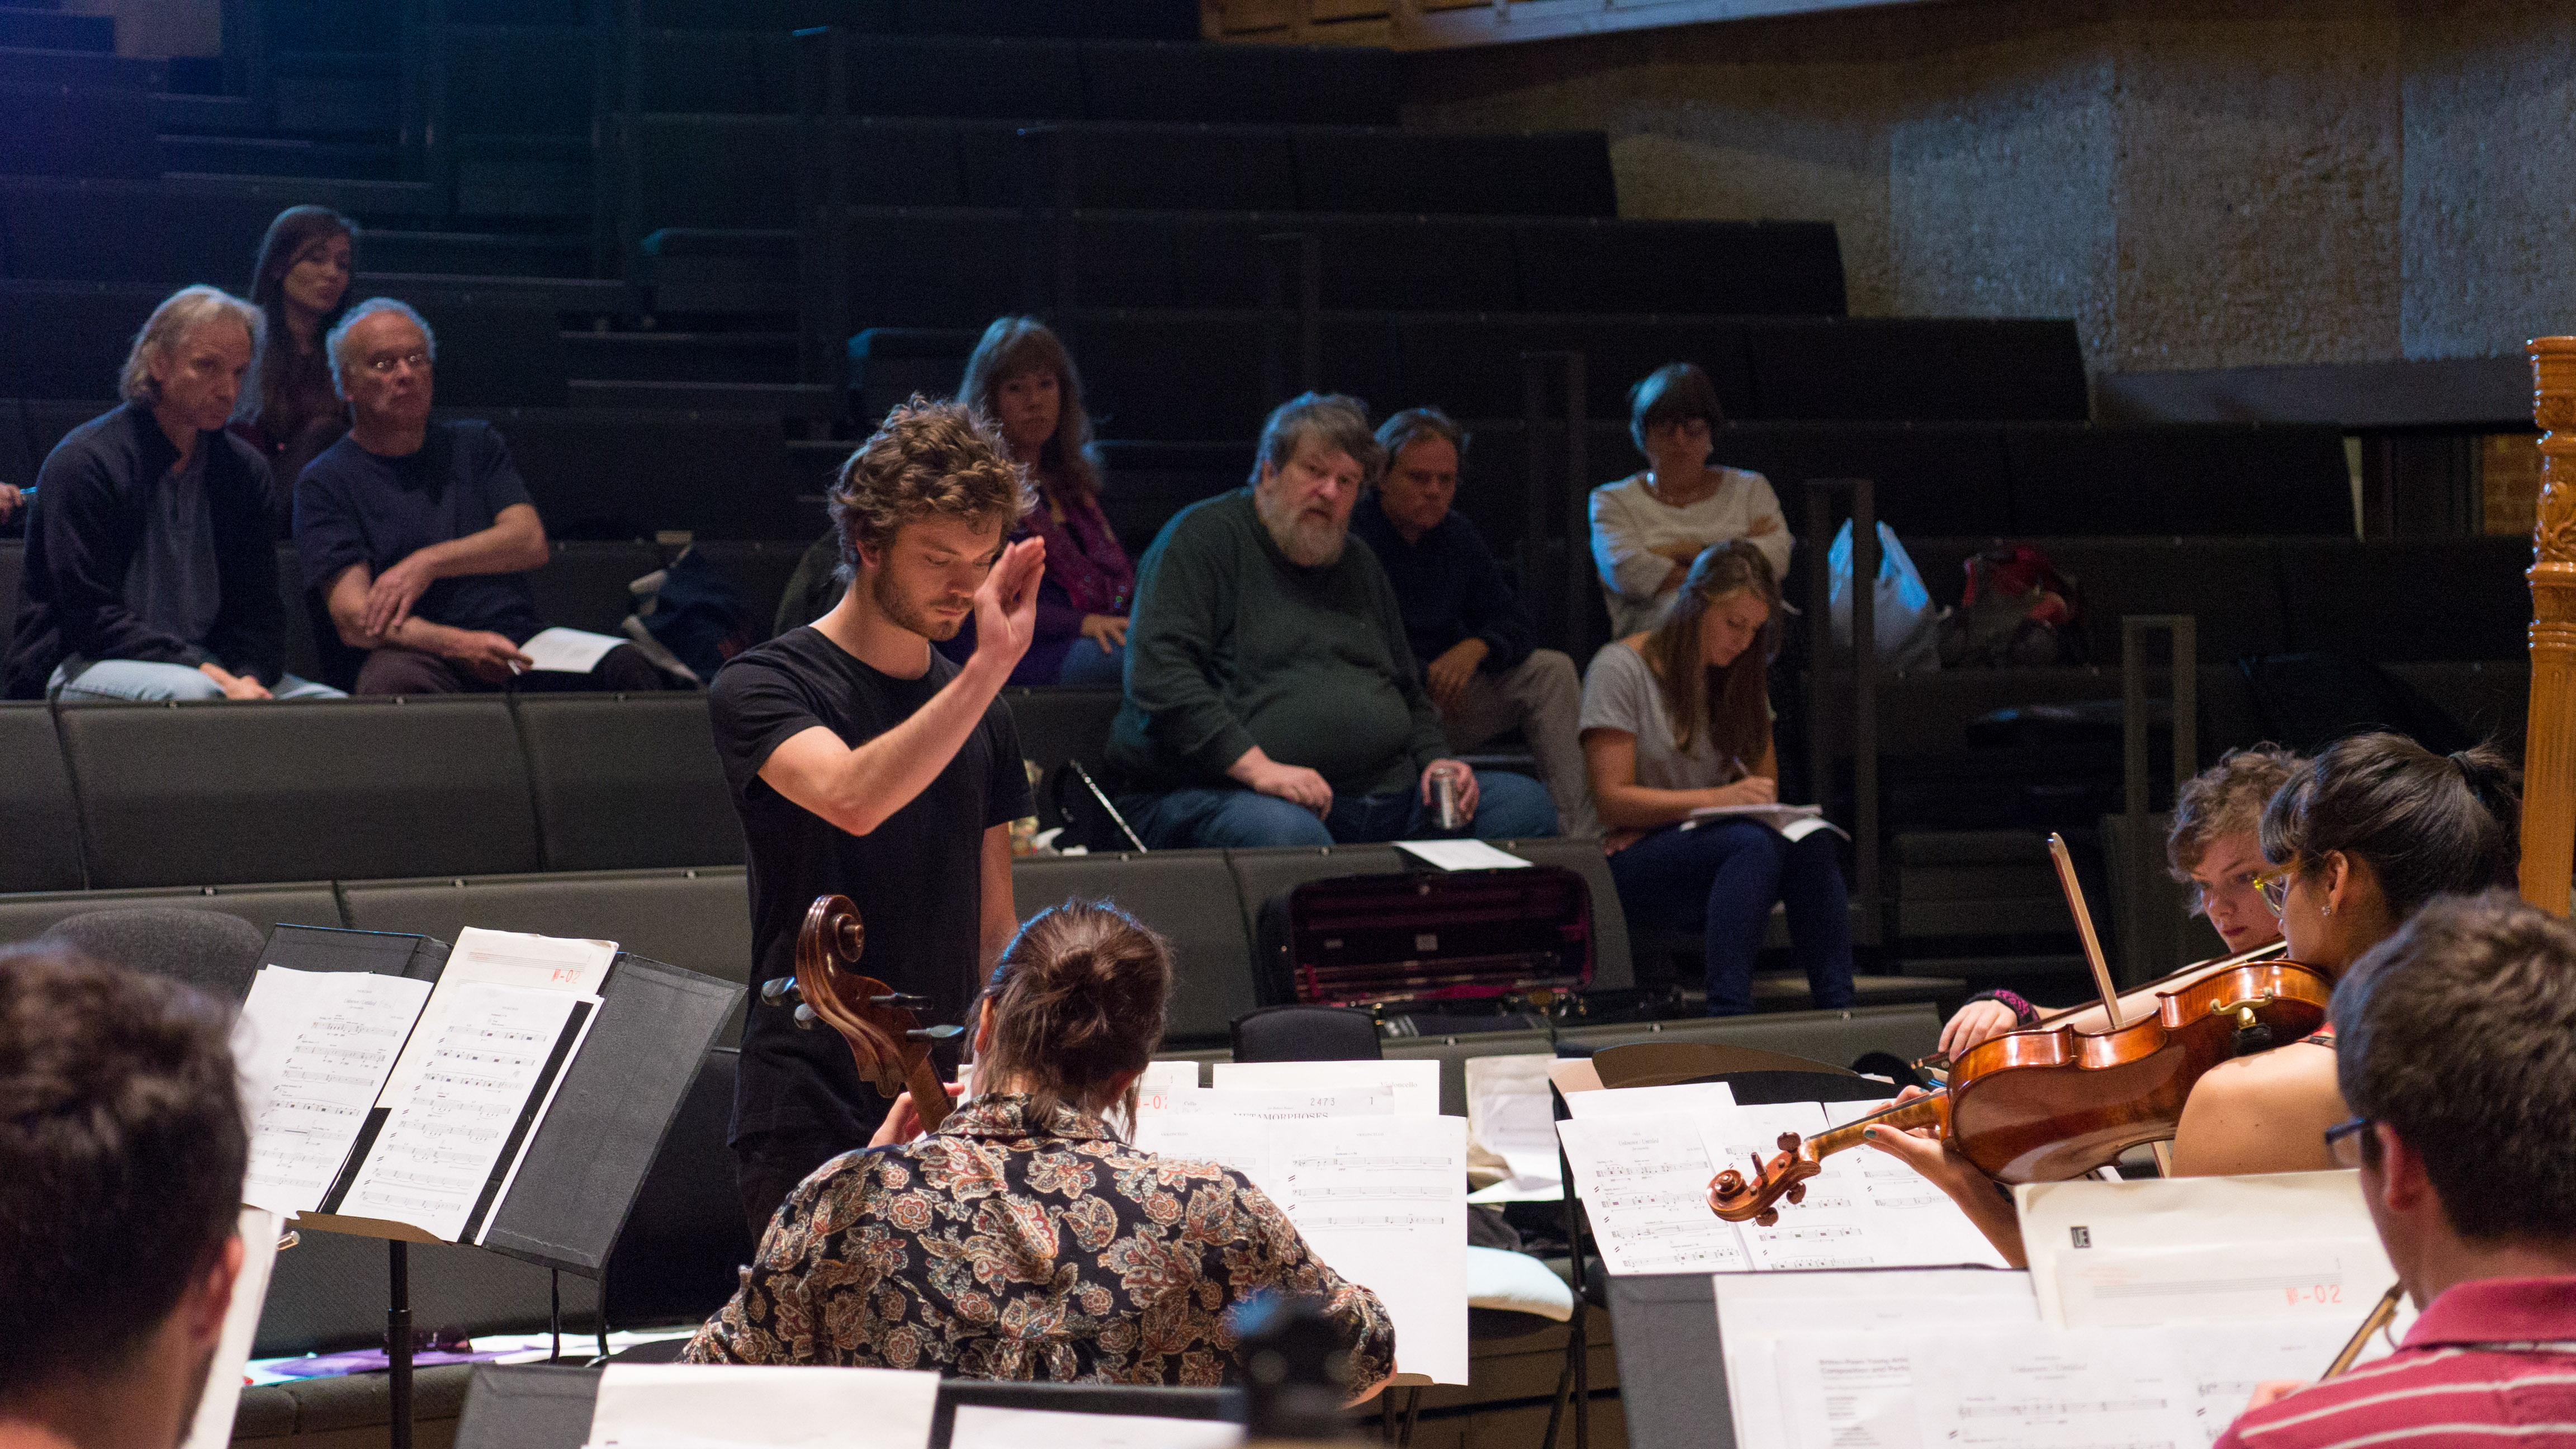 2015 BPYAP composer Jack Sheen leads, with Oliver Knussen and other tutors in background Photo: Sam Murray-Sutton